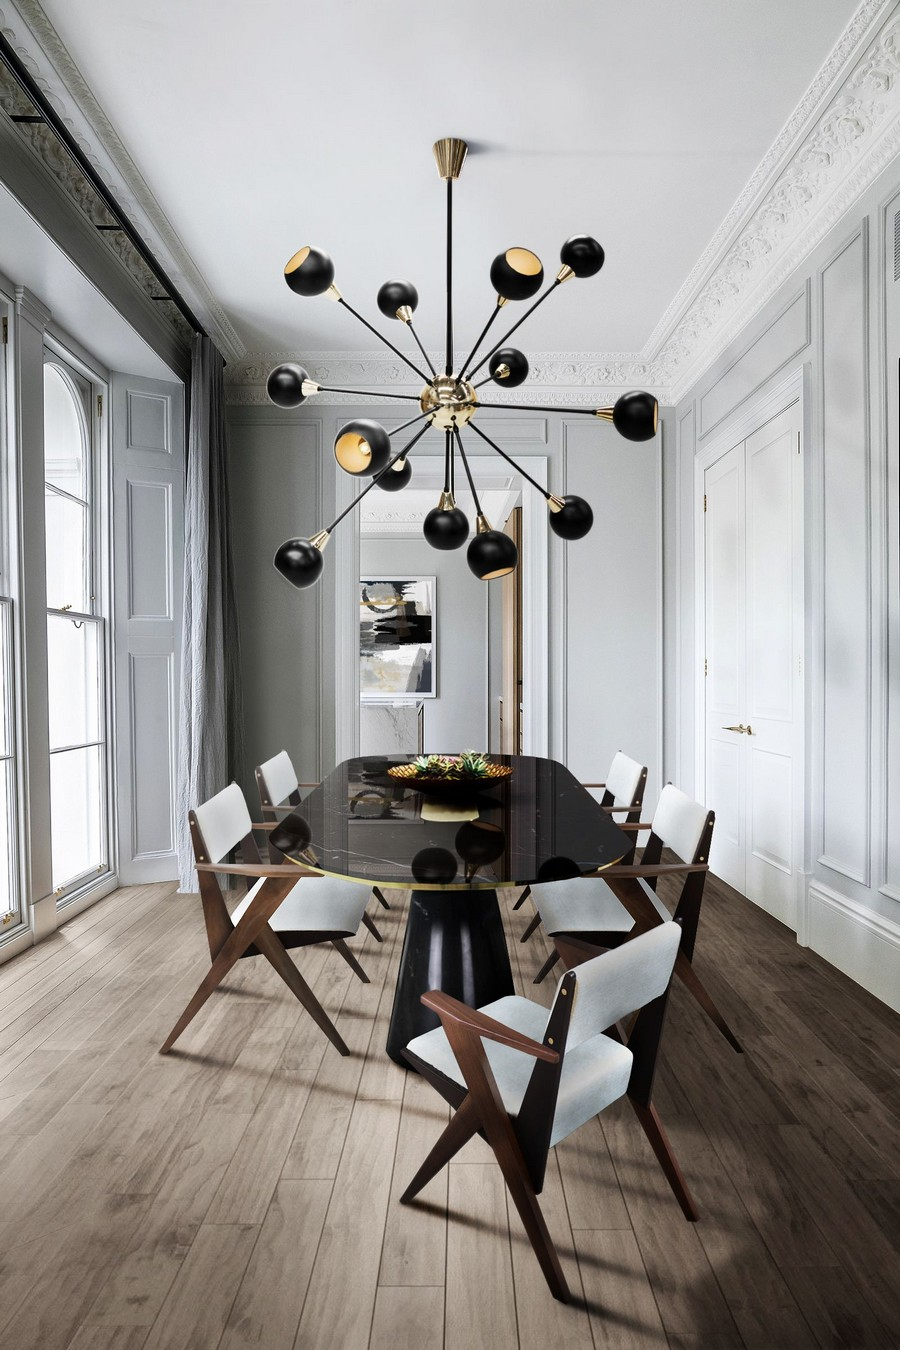 Dining Room Ideas To Set The Course For A Stylish 2021 dining room ideas Dining Room Ideas To Set The Course For A Stylish 2021 lighting is key